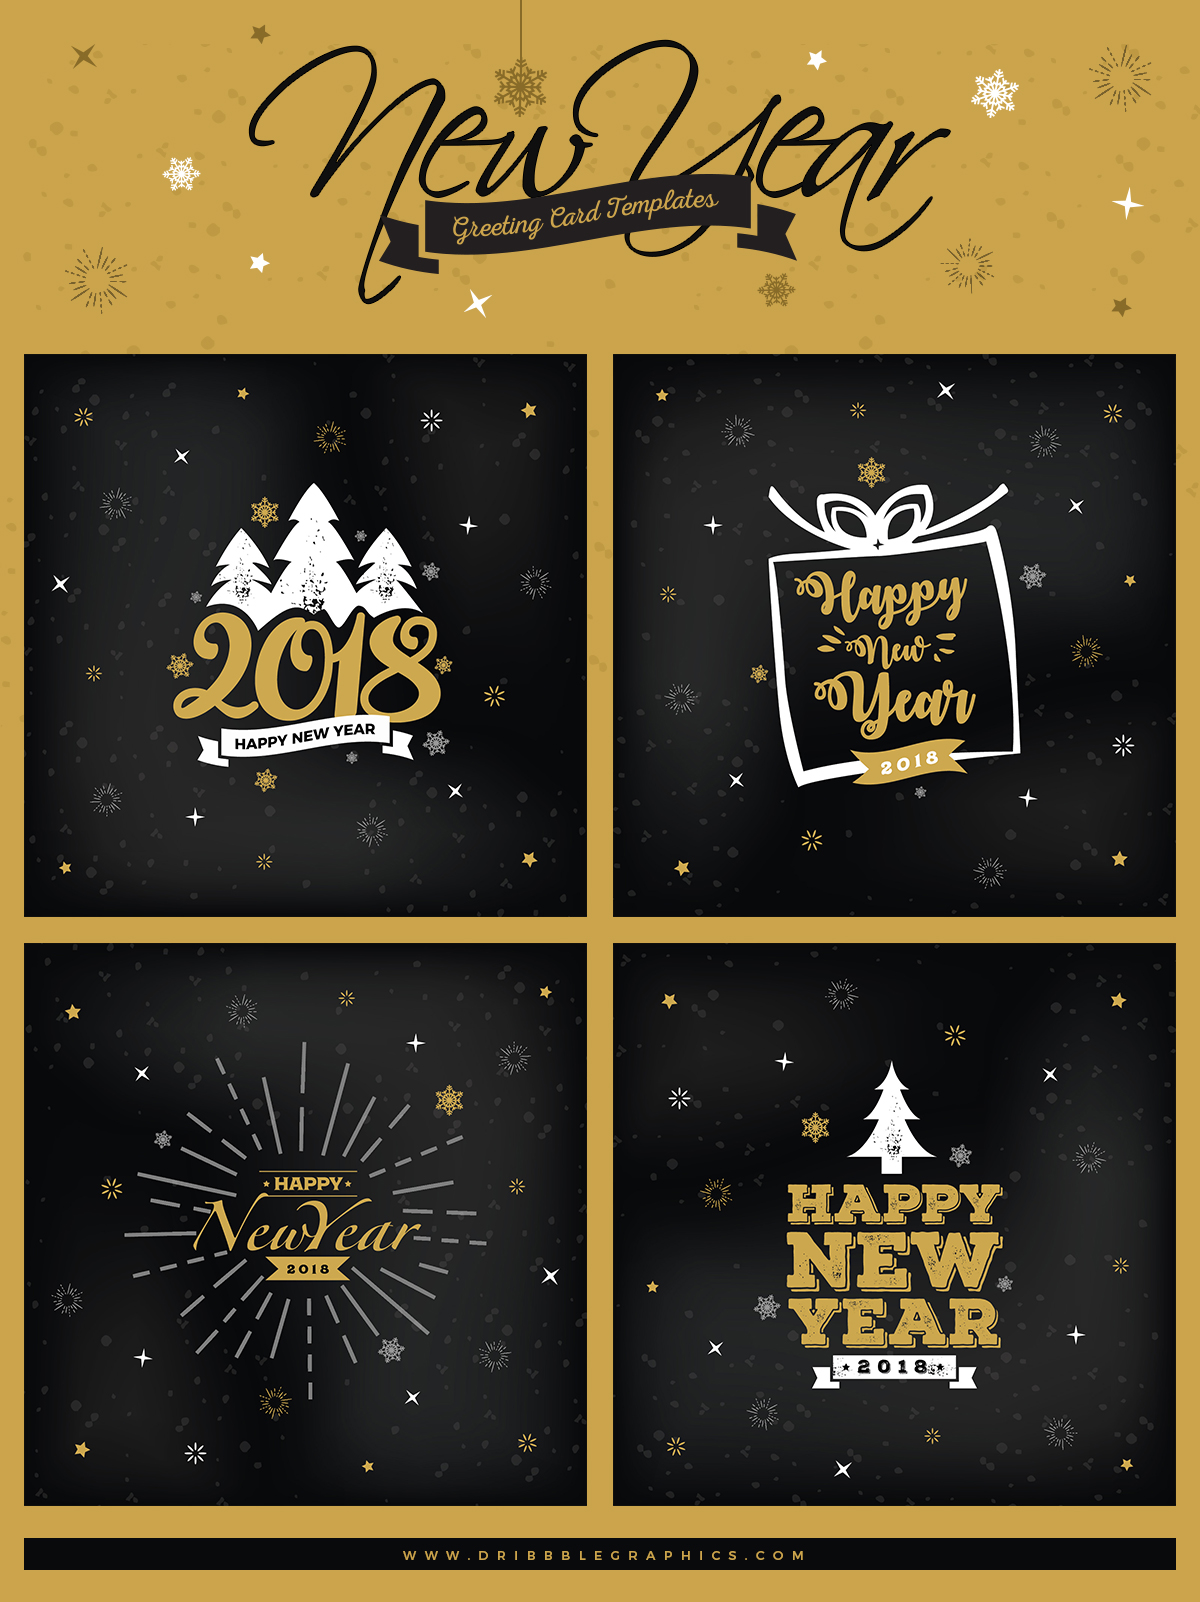 4 free new year greeting card templates